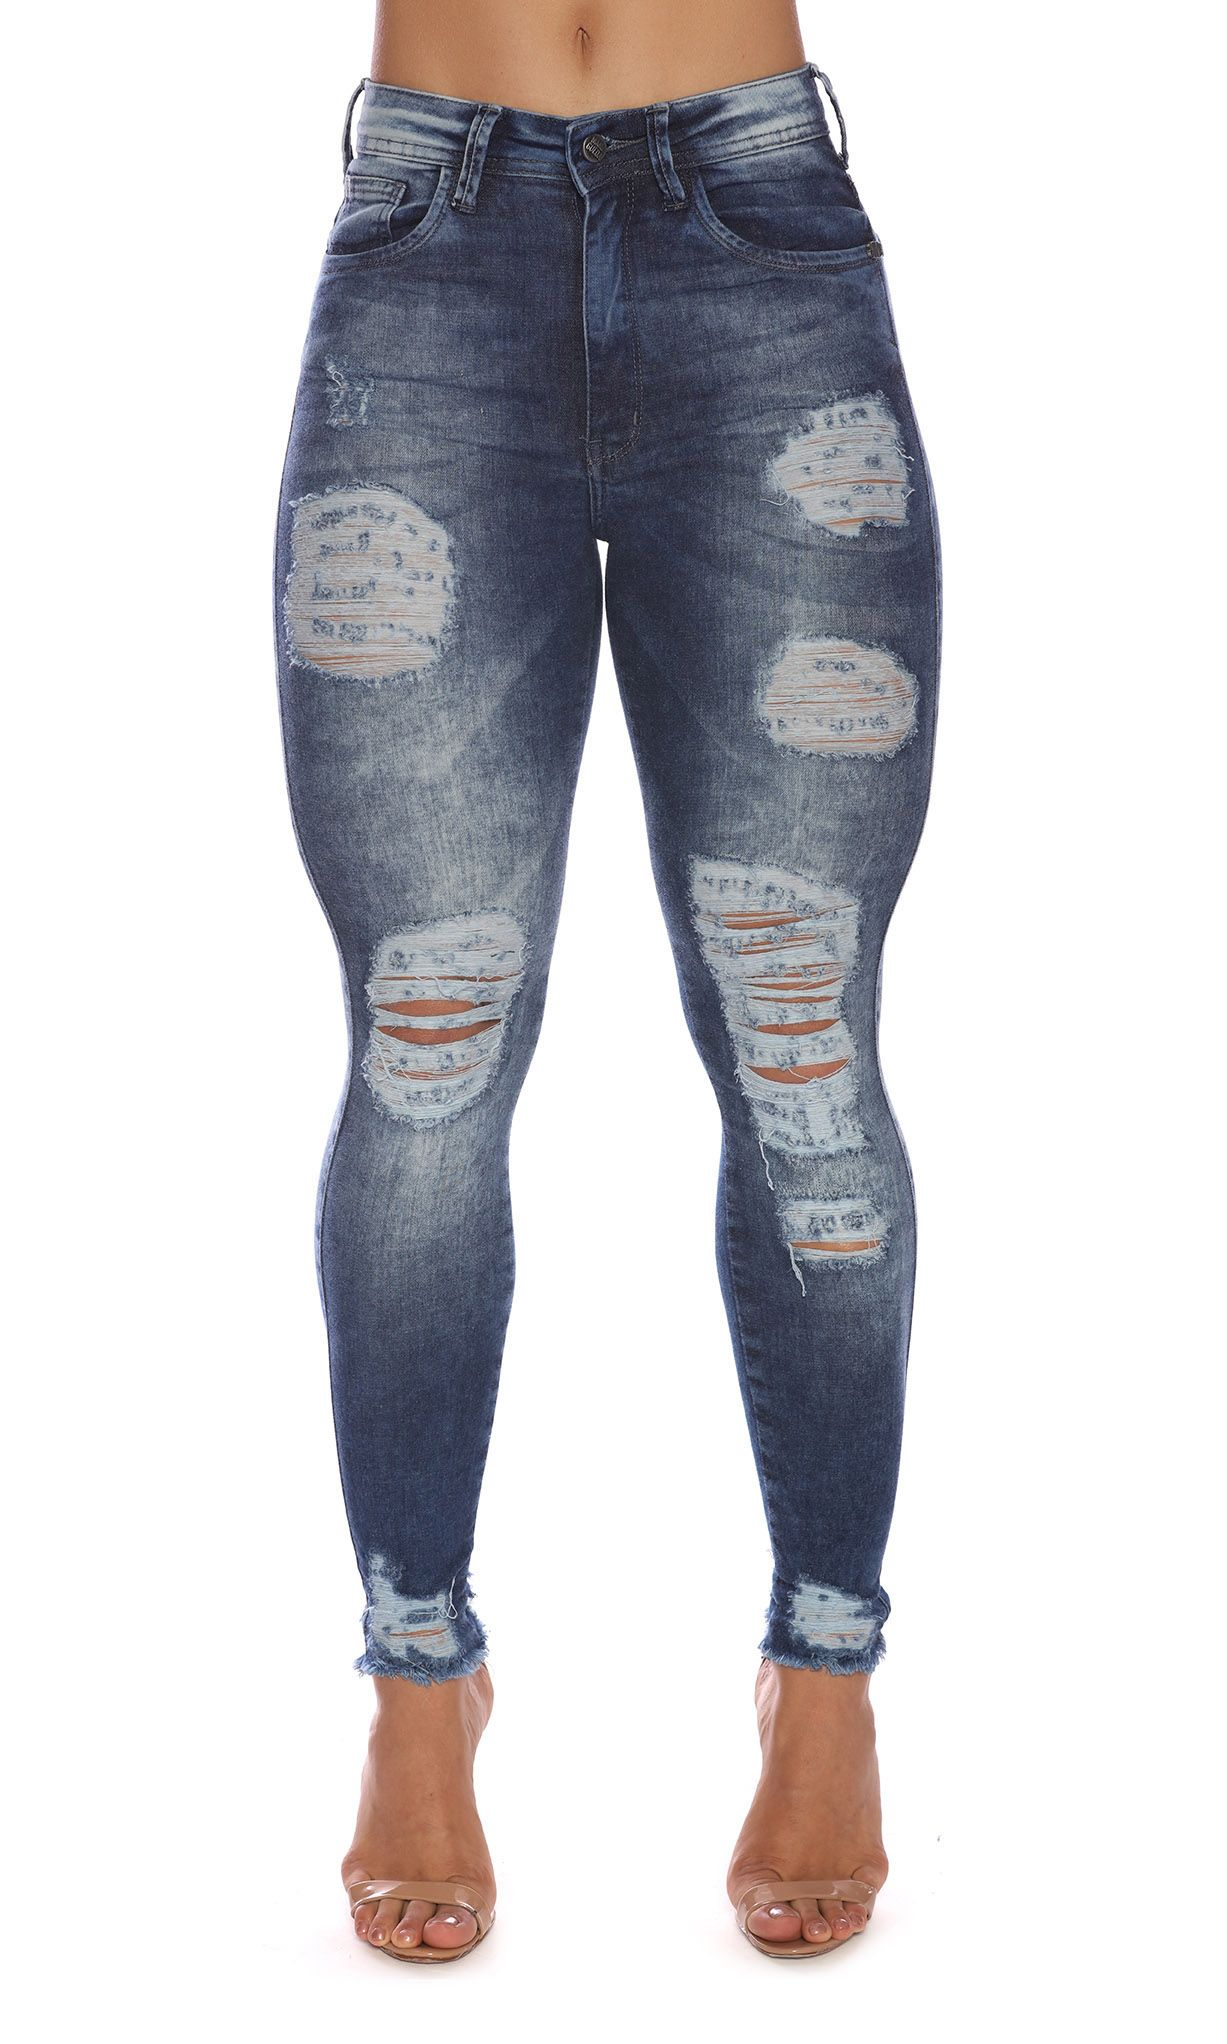 Jeans Pants Skinny Destroyed Maria Gueixa Jeans